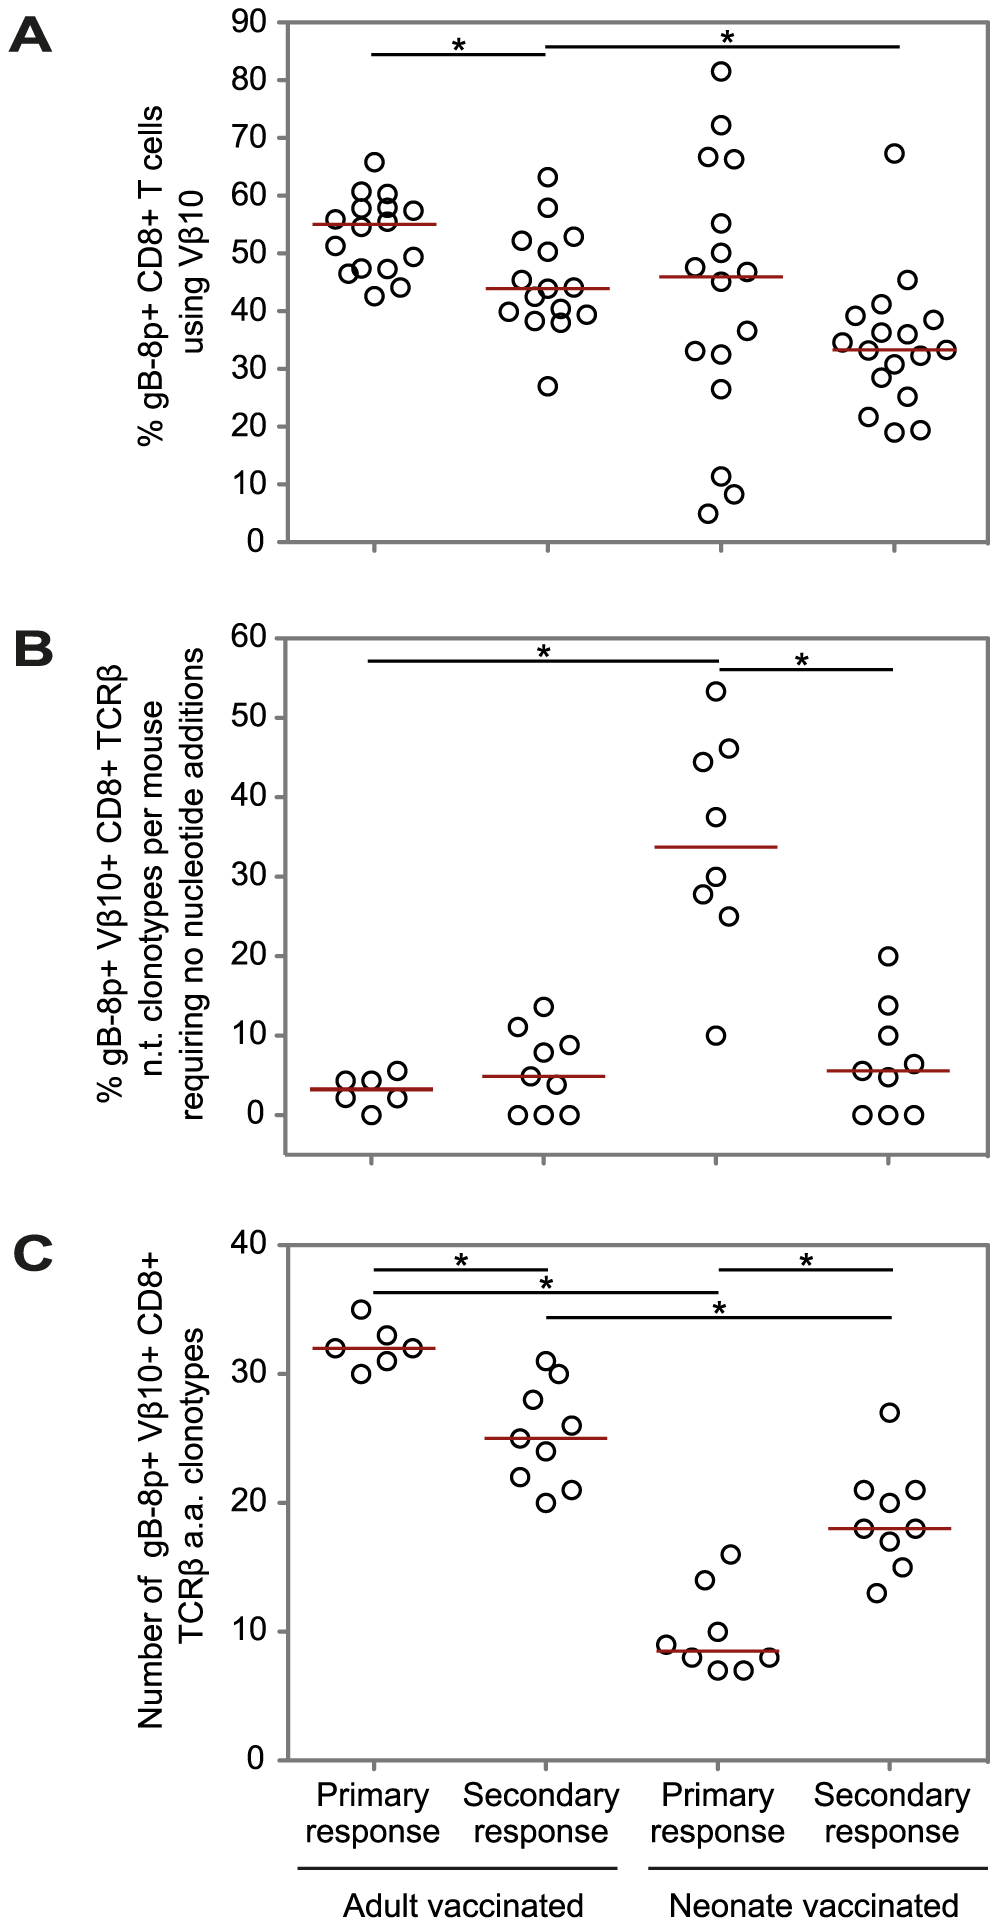 Comparison of the features of the gB-8p-specific CD8+ TCRβ repertoires for primary and secondary responses.